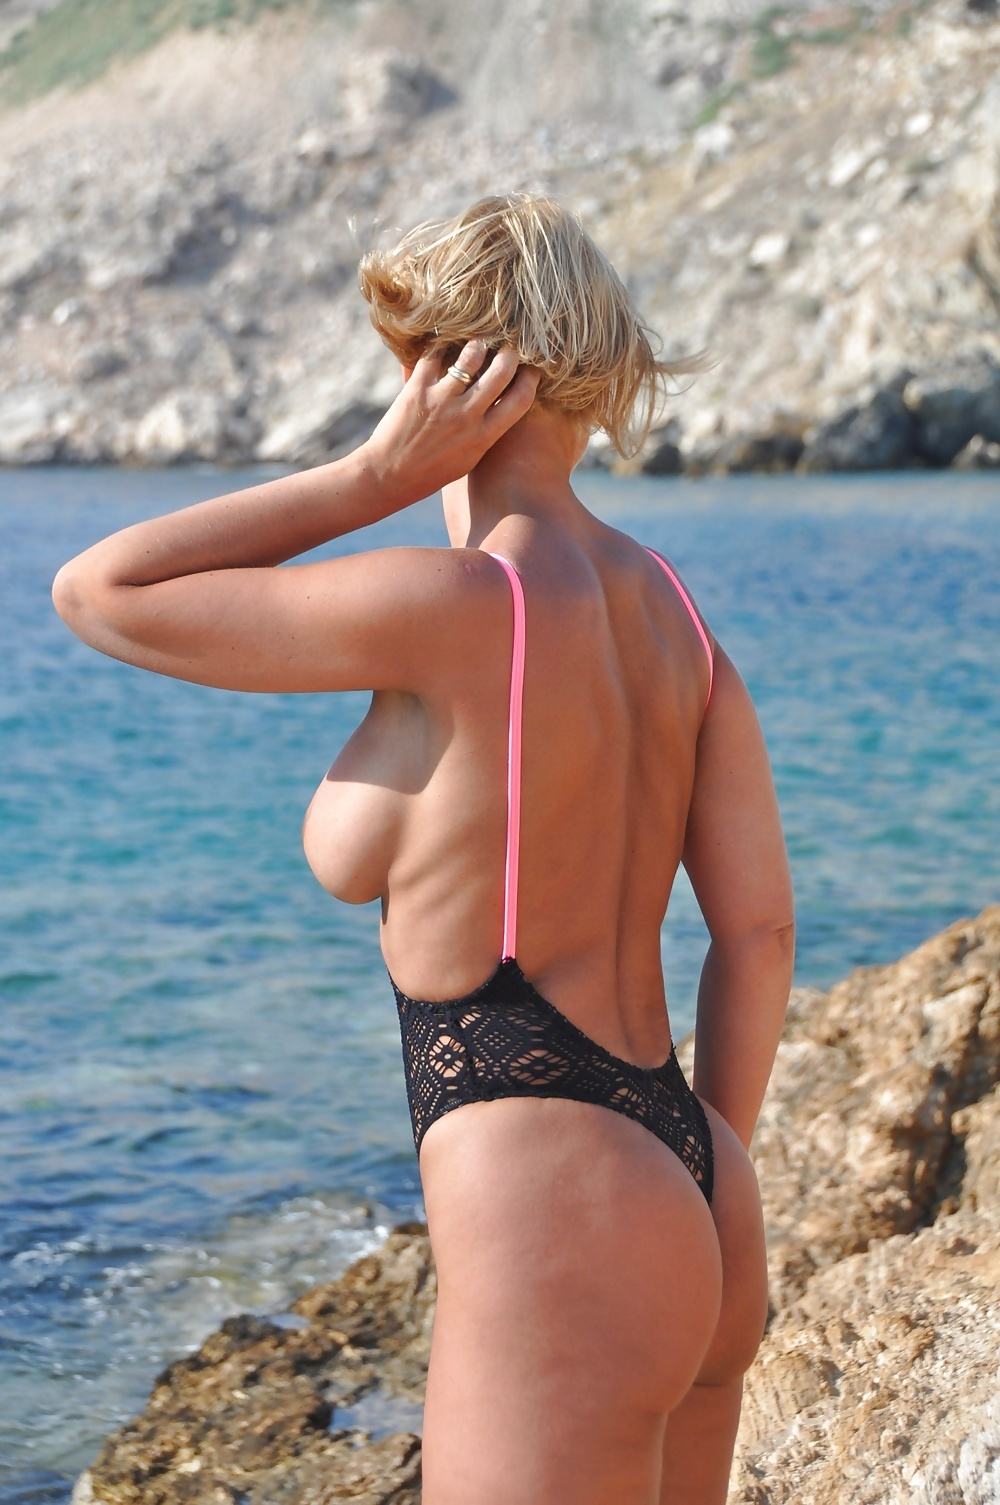 Bathing suit girls nude — pic 3